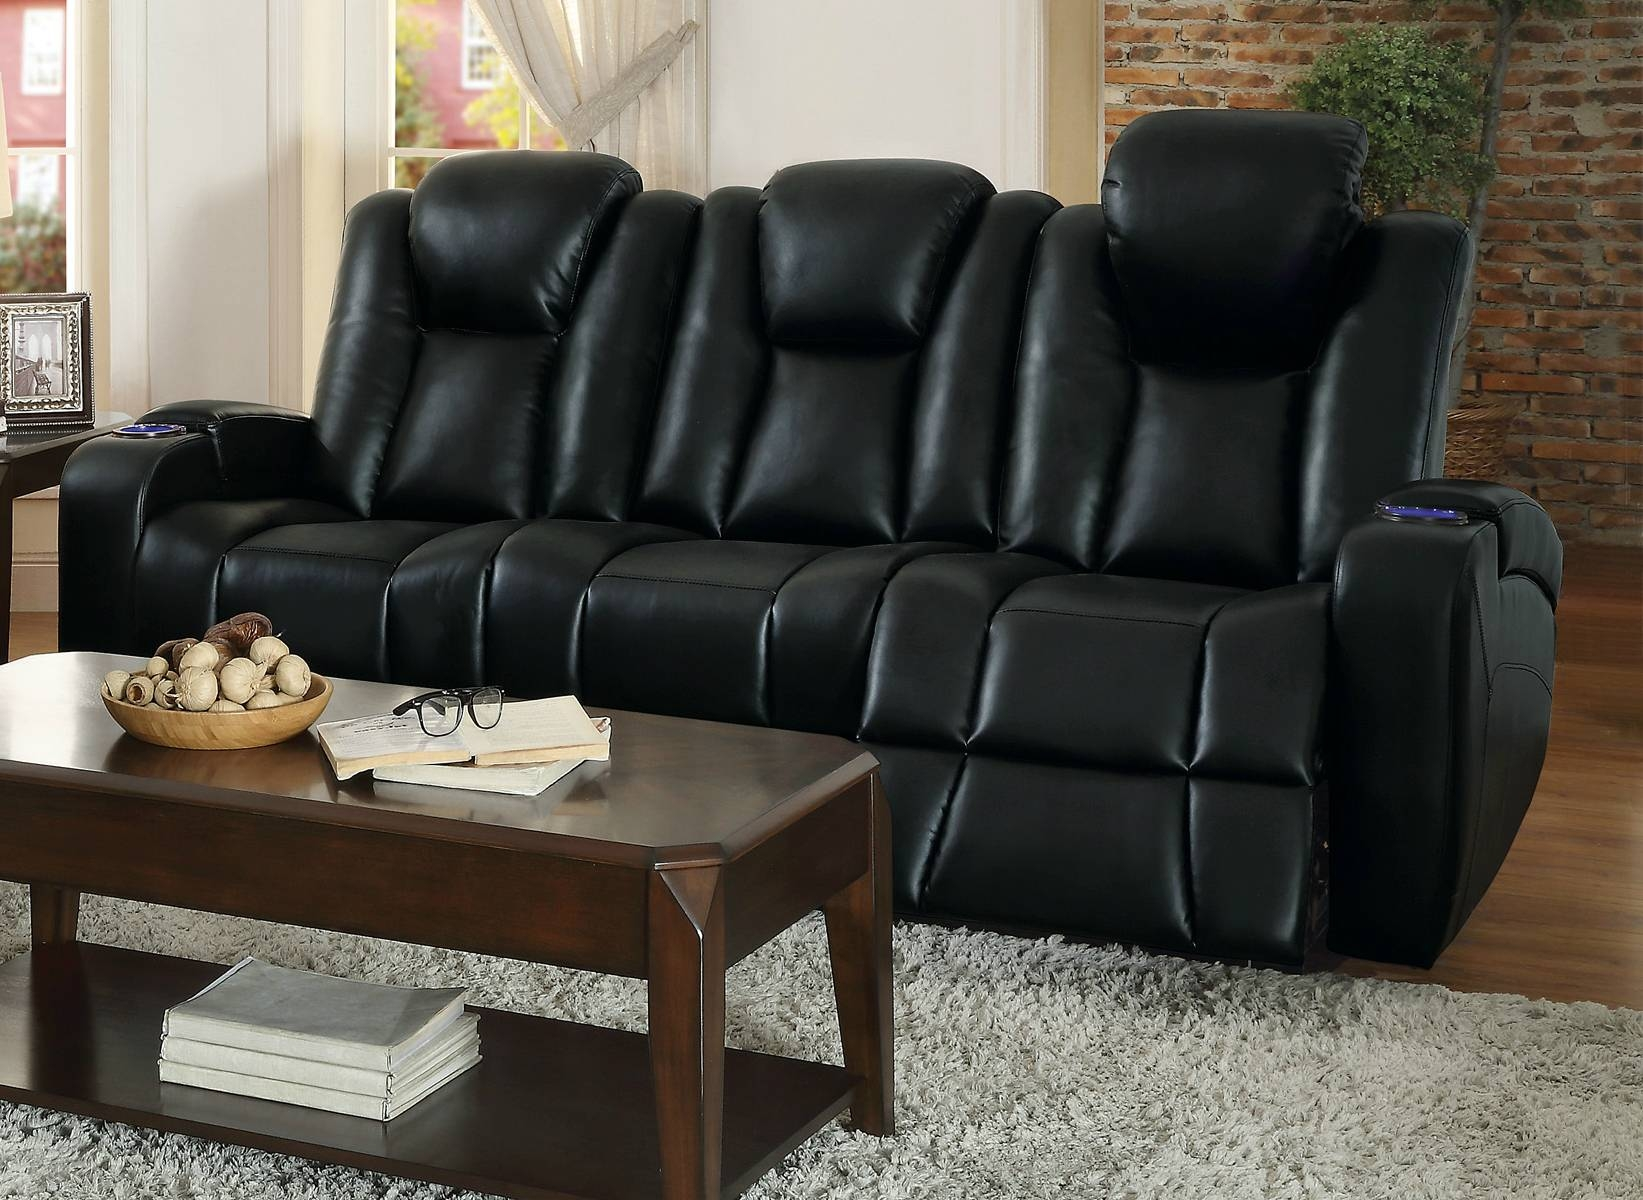 Sofas Center : Reclining Sofas With Consoles Dual Sofa Center in Sofas With Consoles (Image 25 of 30)